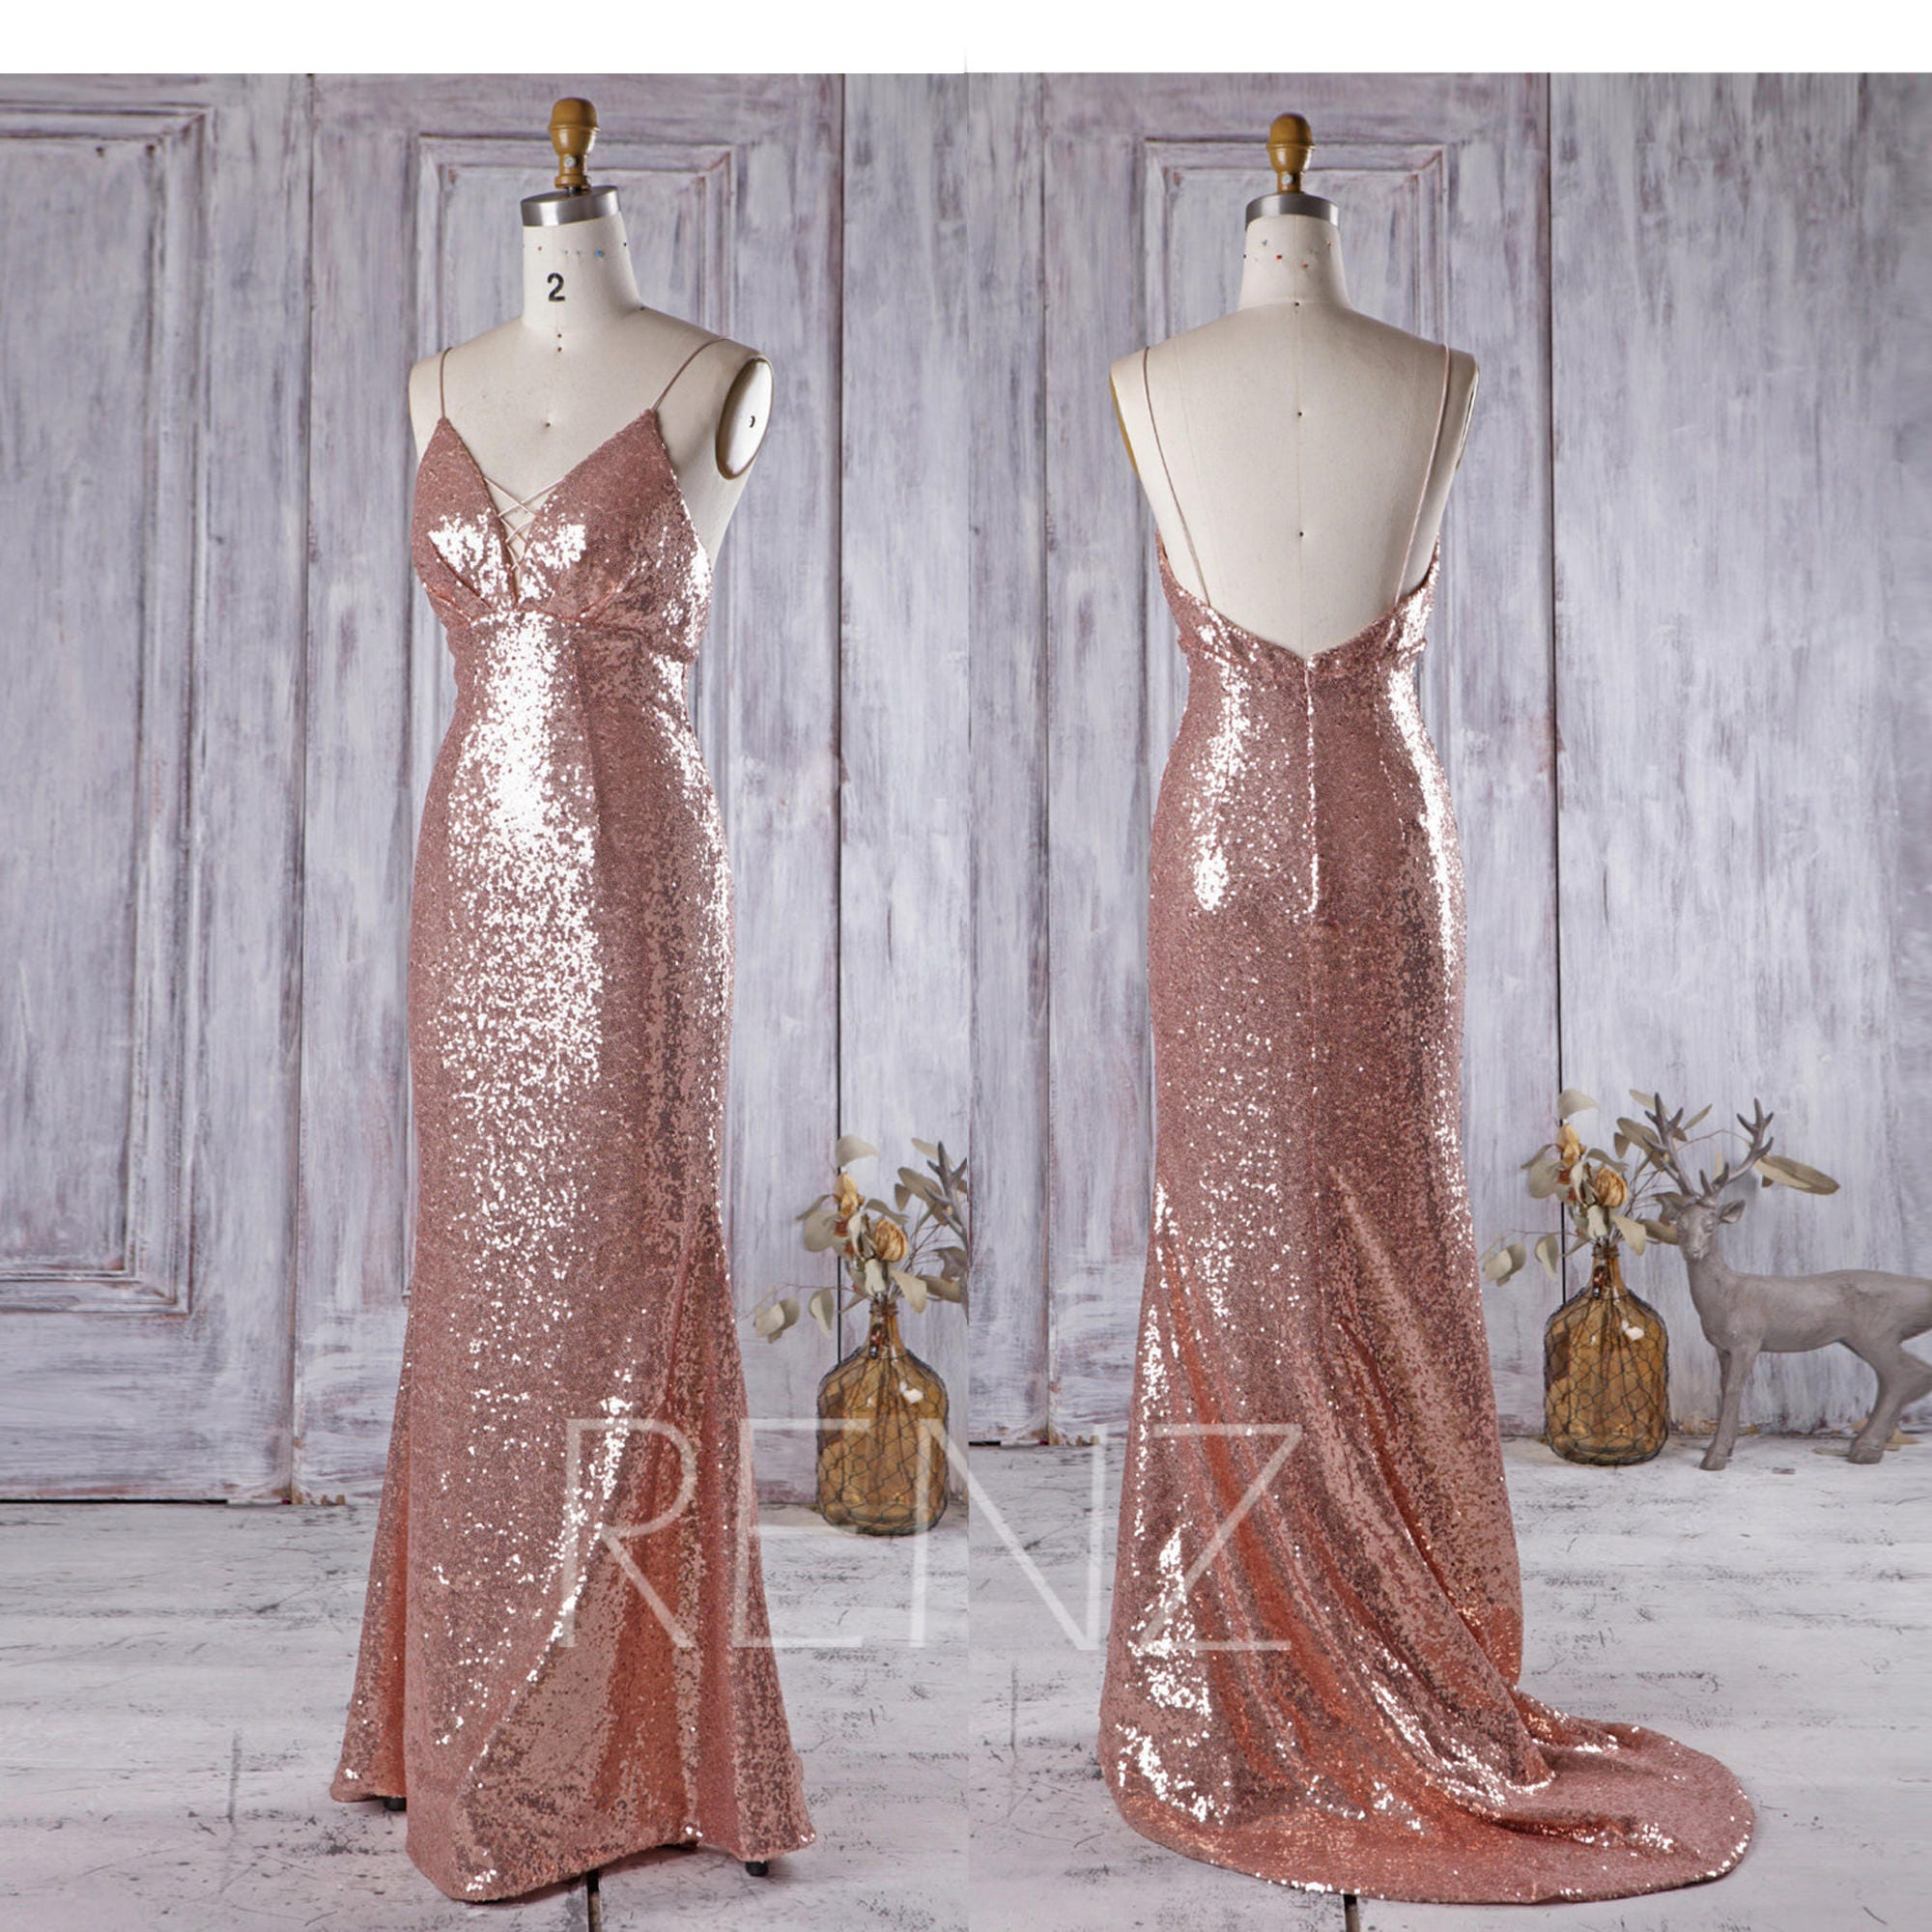 872475c6371d Party Dress Rose Gold Sequin Bridesmaid Dress V Neck | Etsy